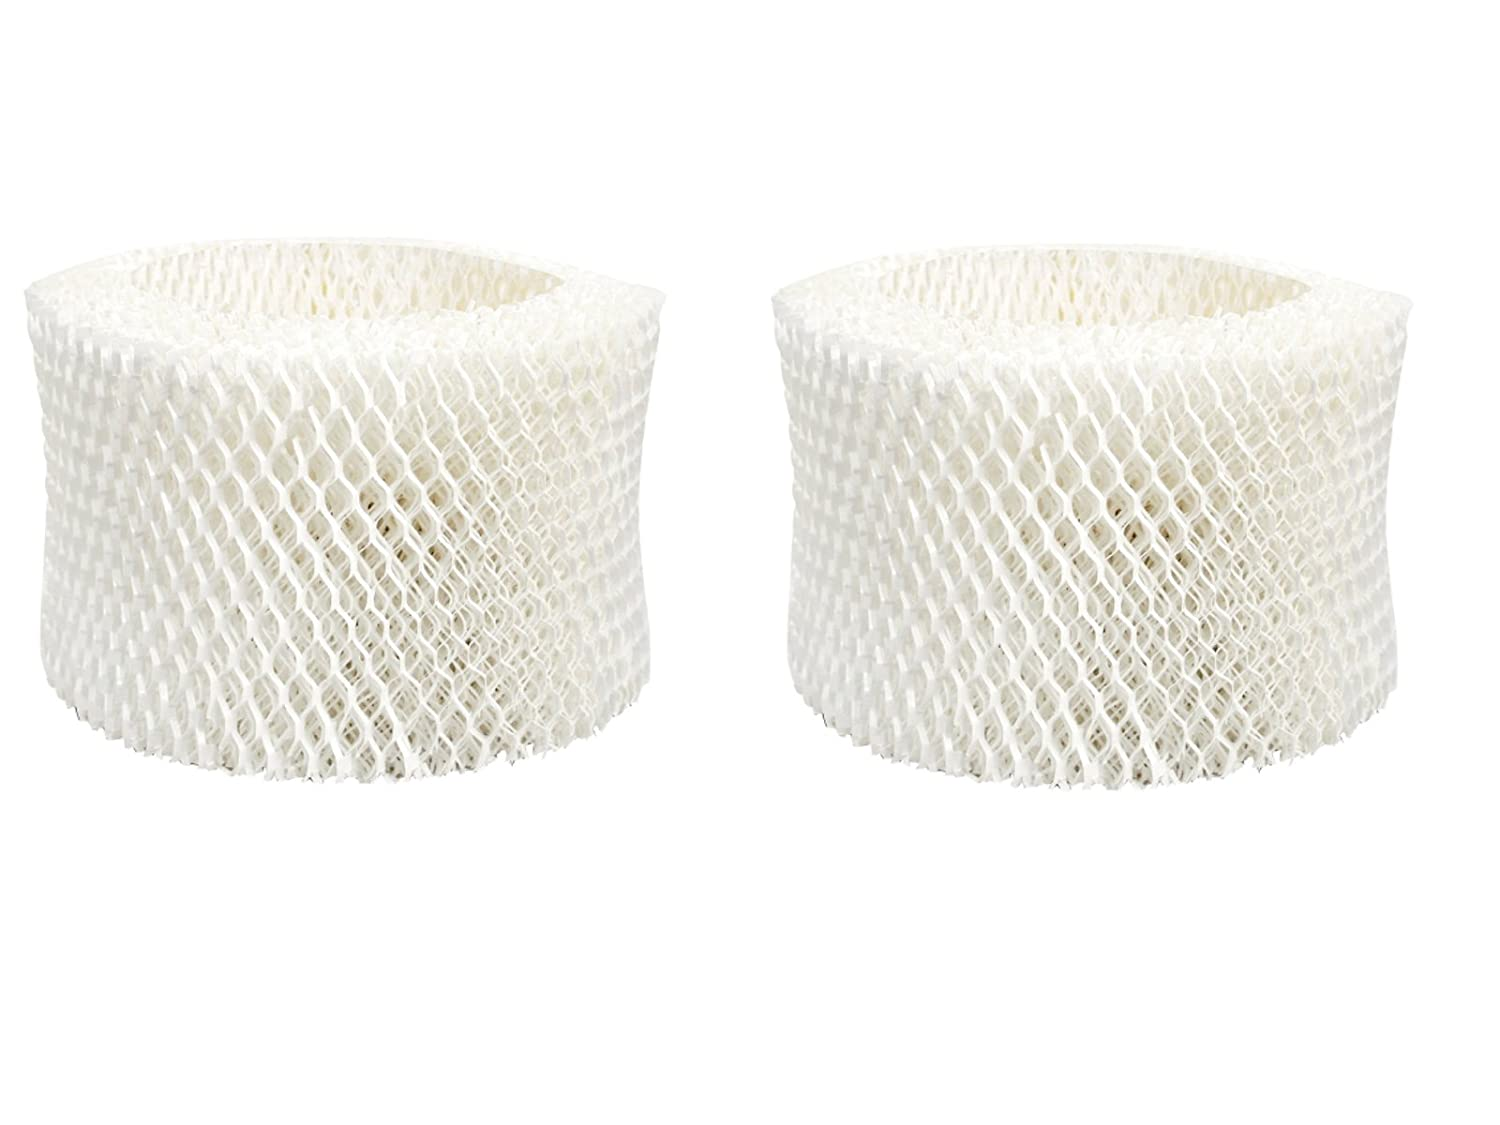 Genuine Honeywell Coolmist Wick Filter, for Duracraft humidifiers HAC504V1 2-Pack Special